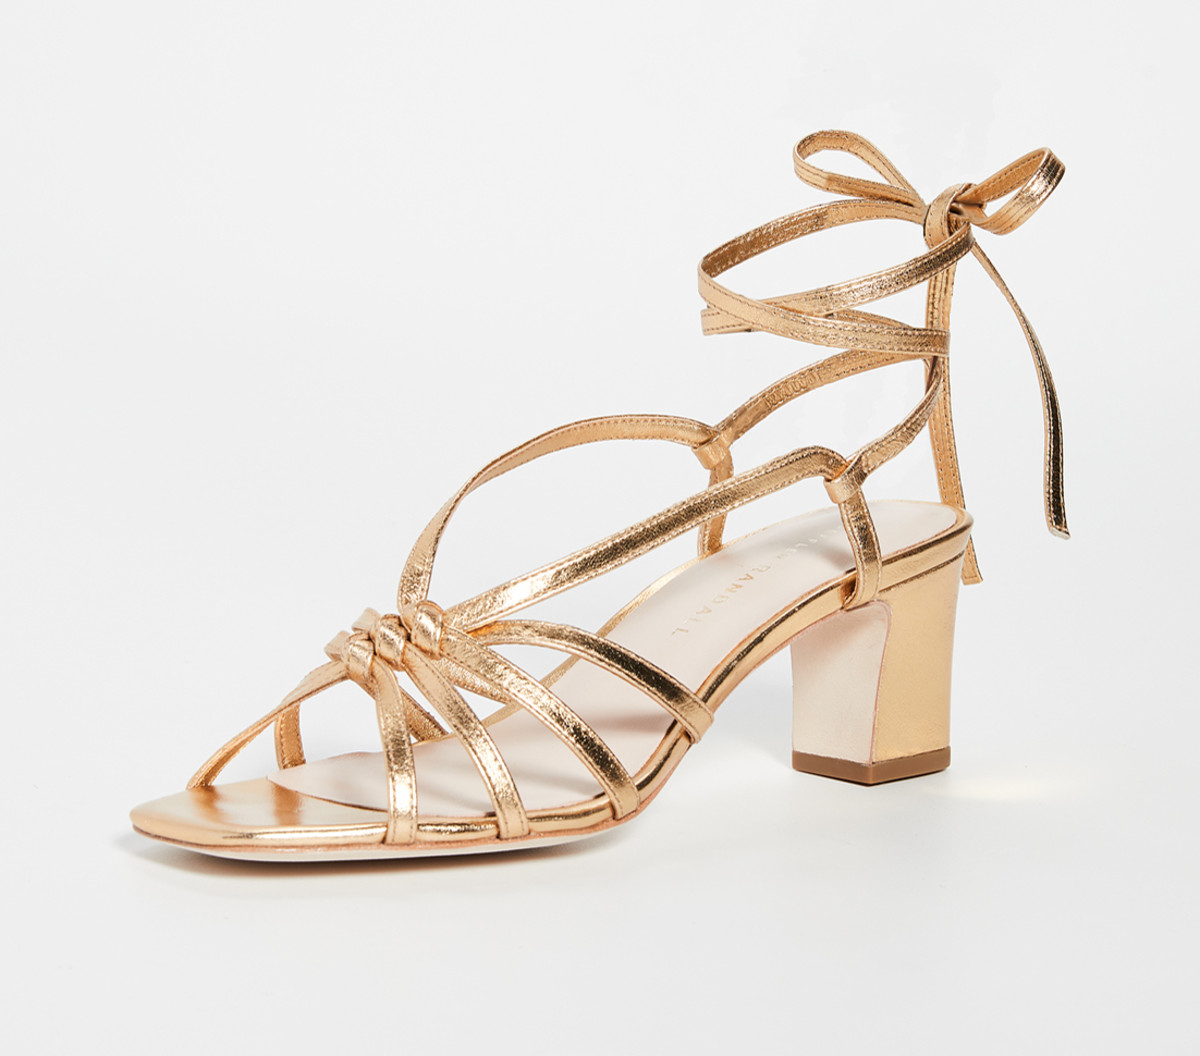 Loeffler Randall 'Libby' Knotted Wrap Sandals, $350, available here.